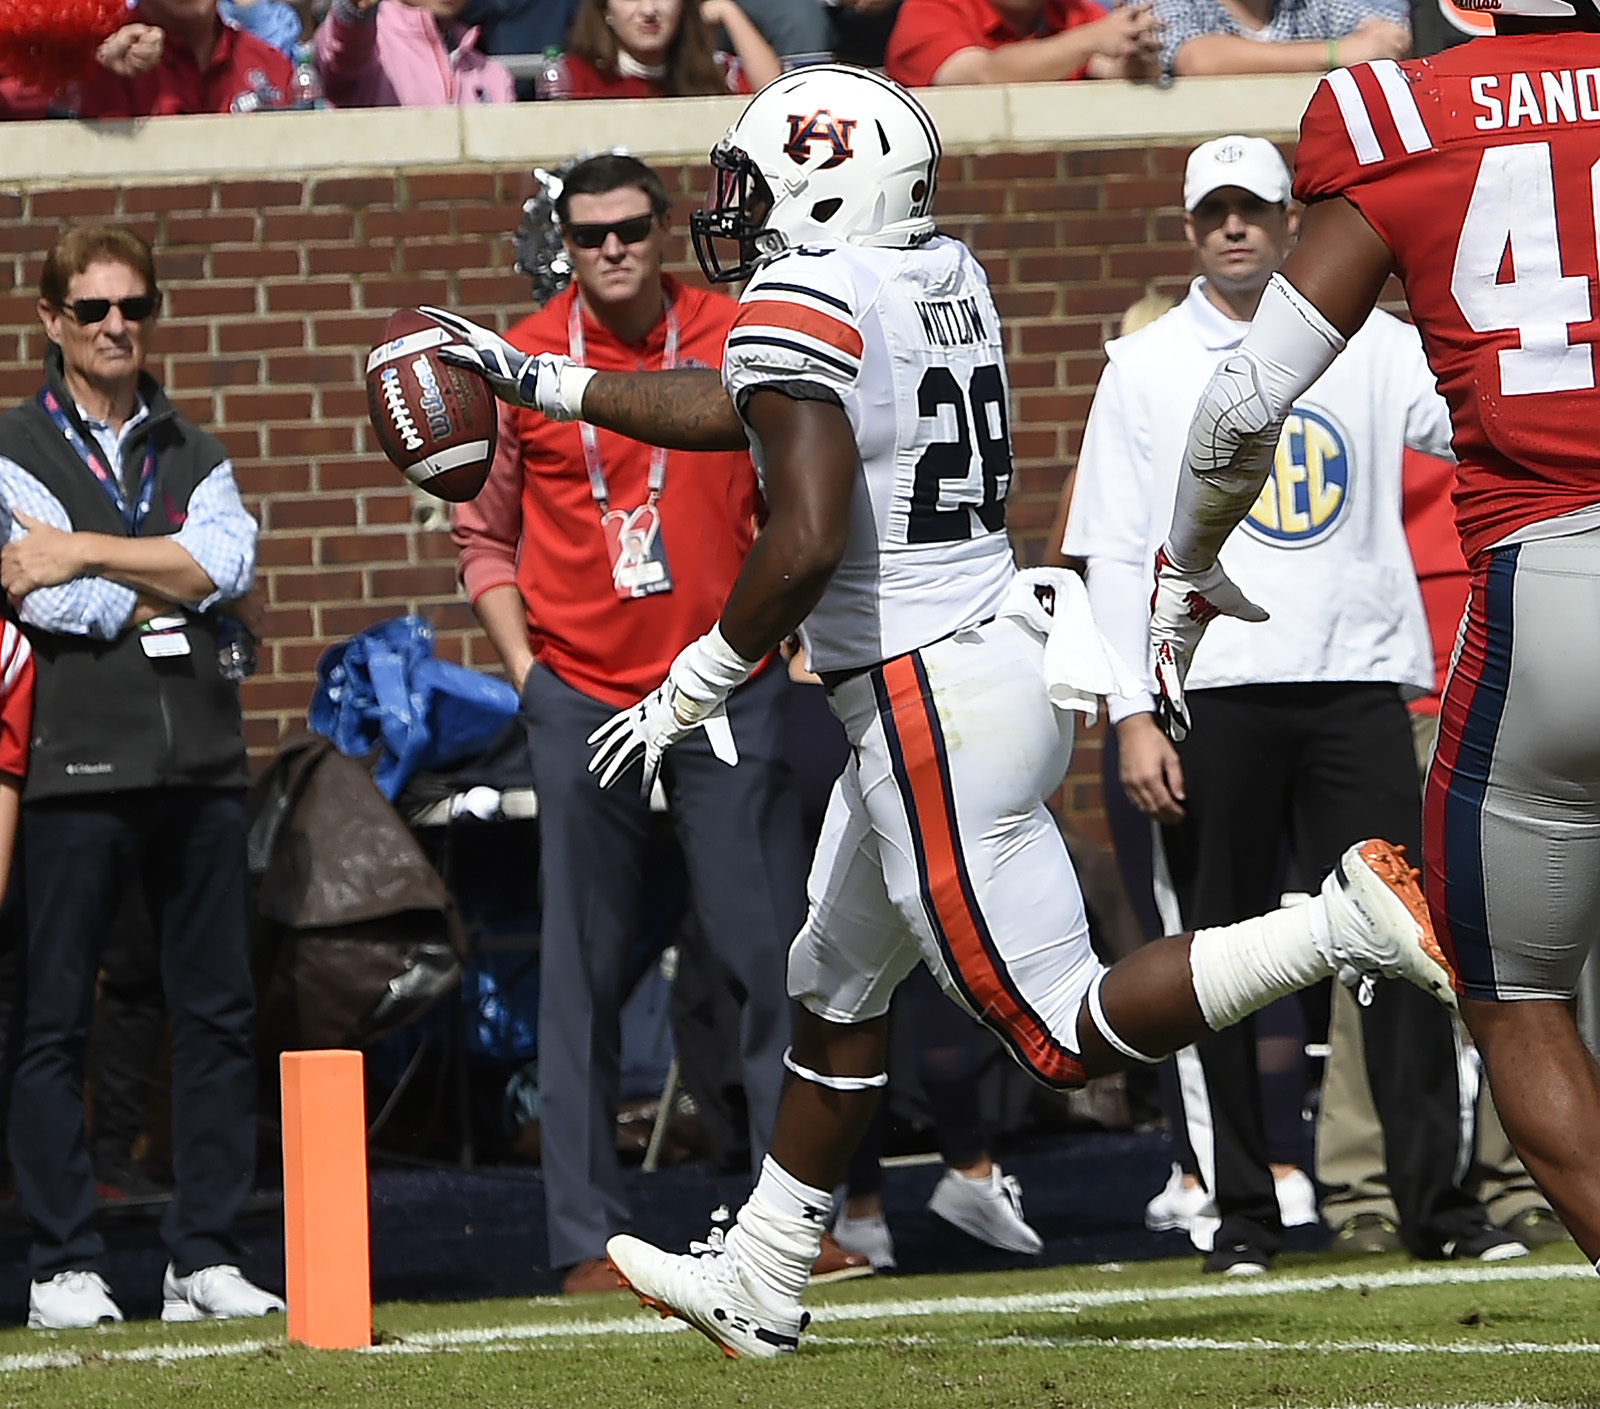 Auburn's JaTarvious Whitlow scores a touchdown in the first half. Auburn at Ole Miss on Saturday, Oct. 20, 2018 in Oxford, MS. Todd Van Emst/AU Athletics